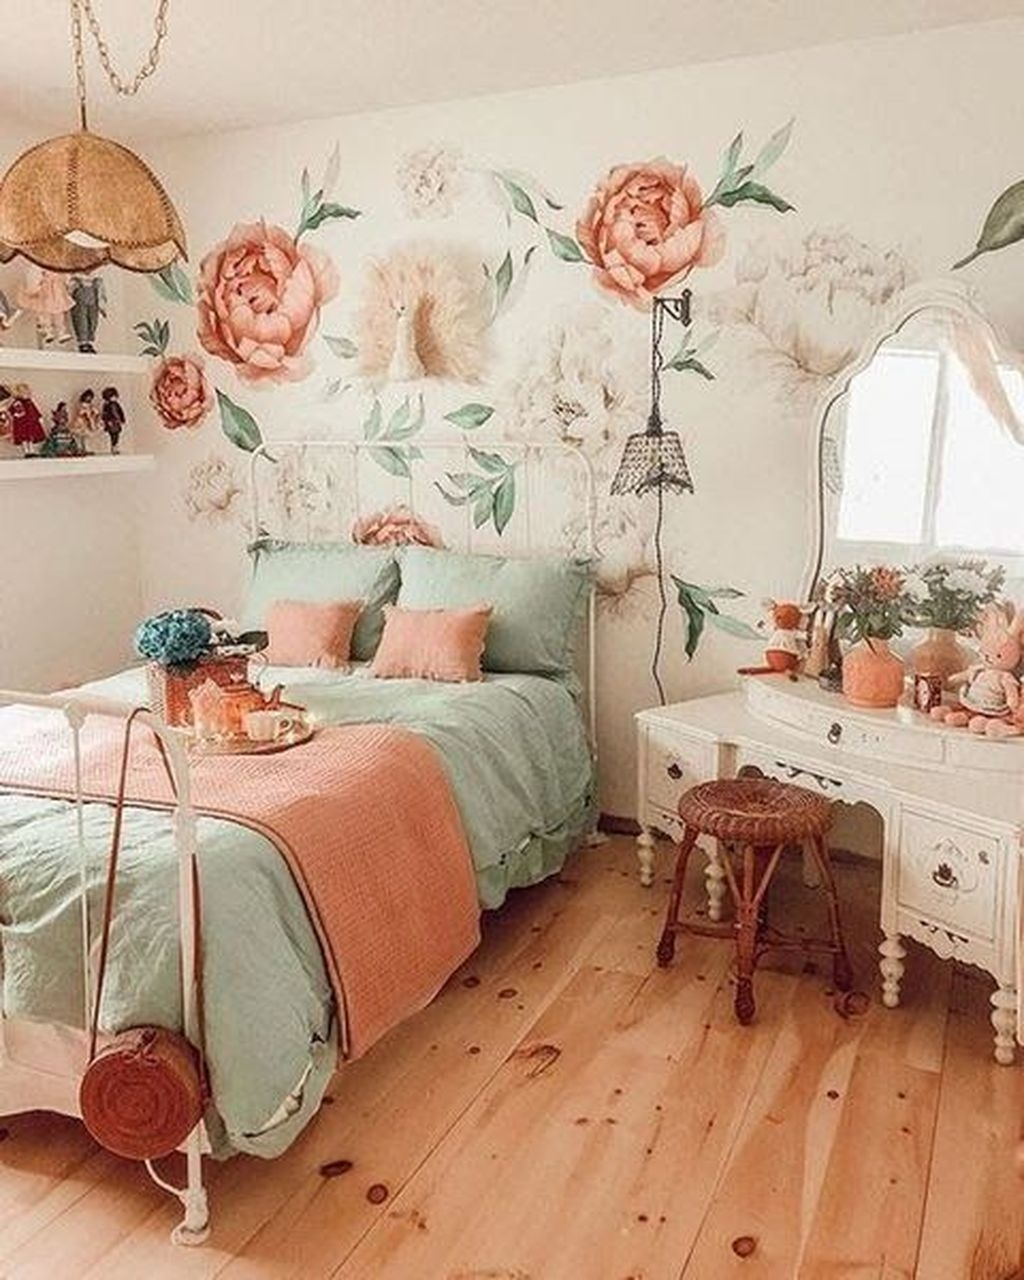 Make Your Bedroom More Romantic With These Romantic Bedroom Decorations 50